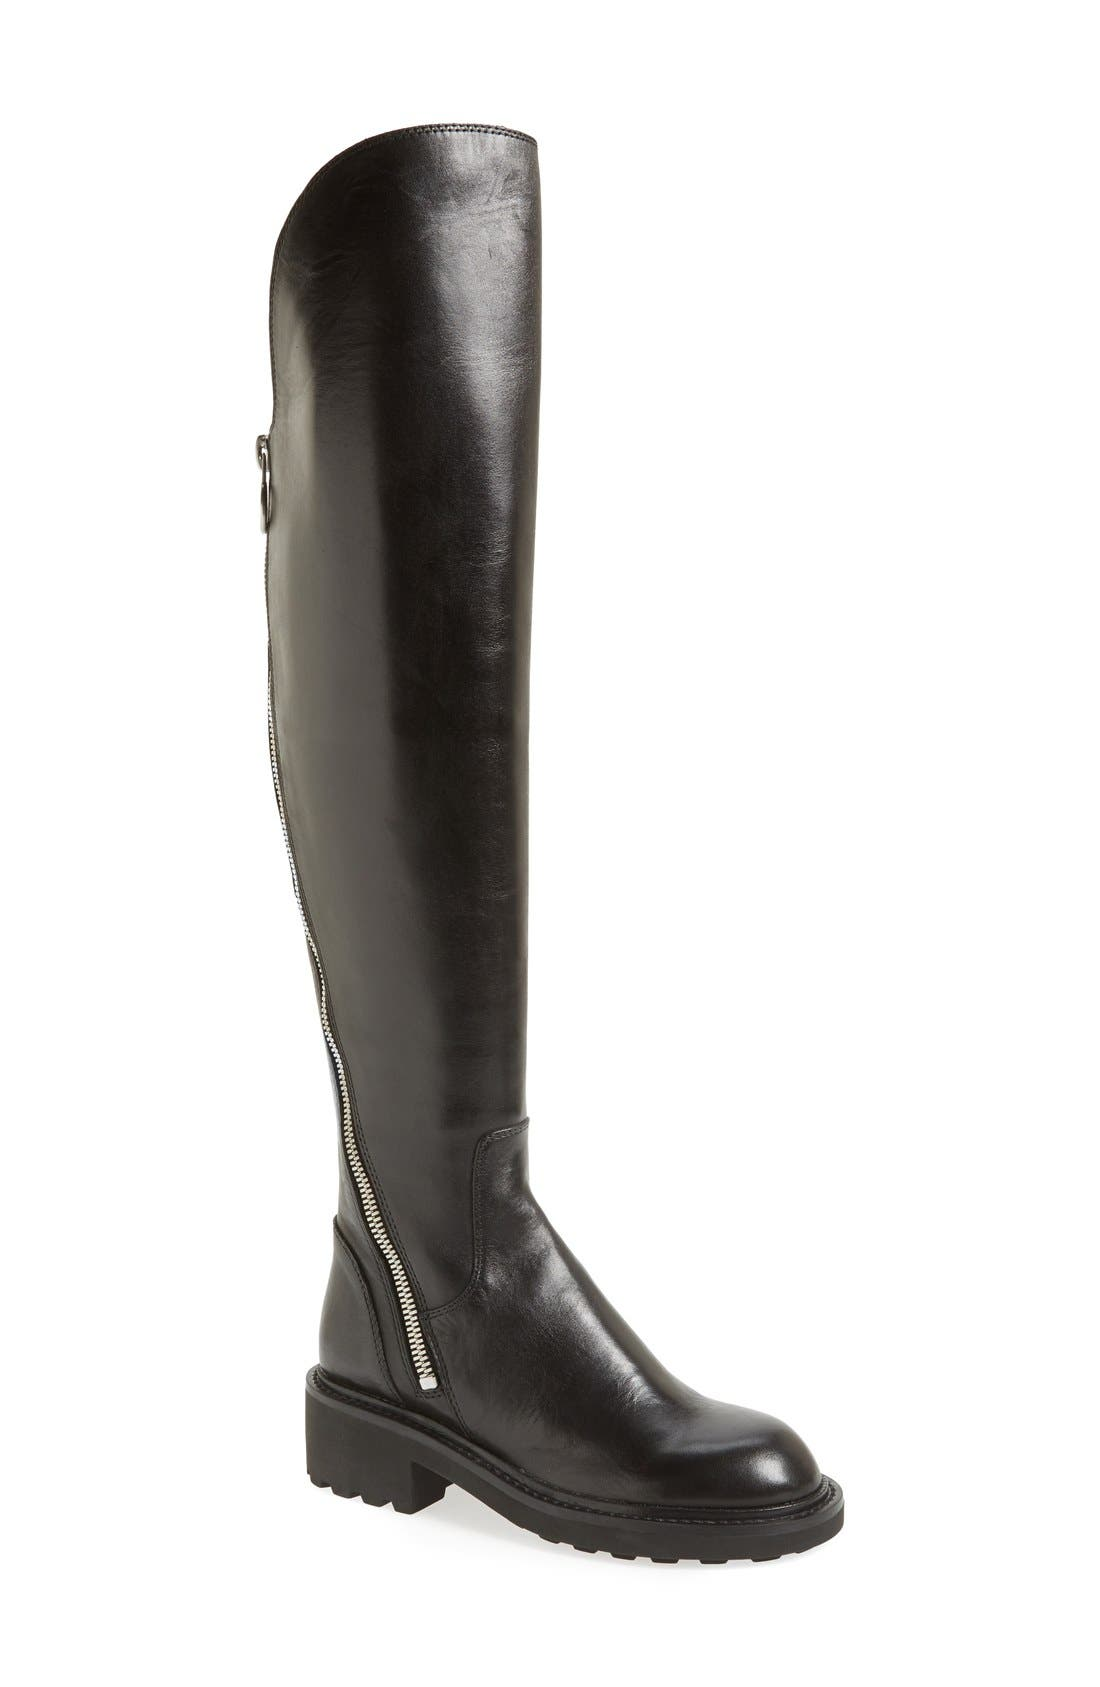 Alternate Image 1 Selected - Ash 'Seven' Over the Knee Boot (Women)